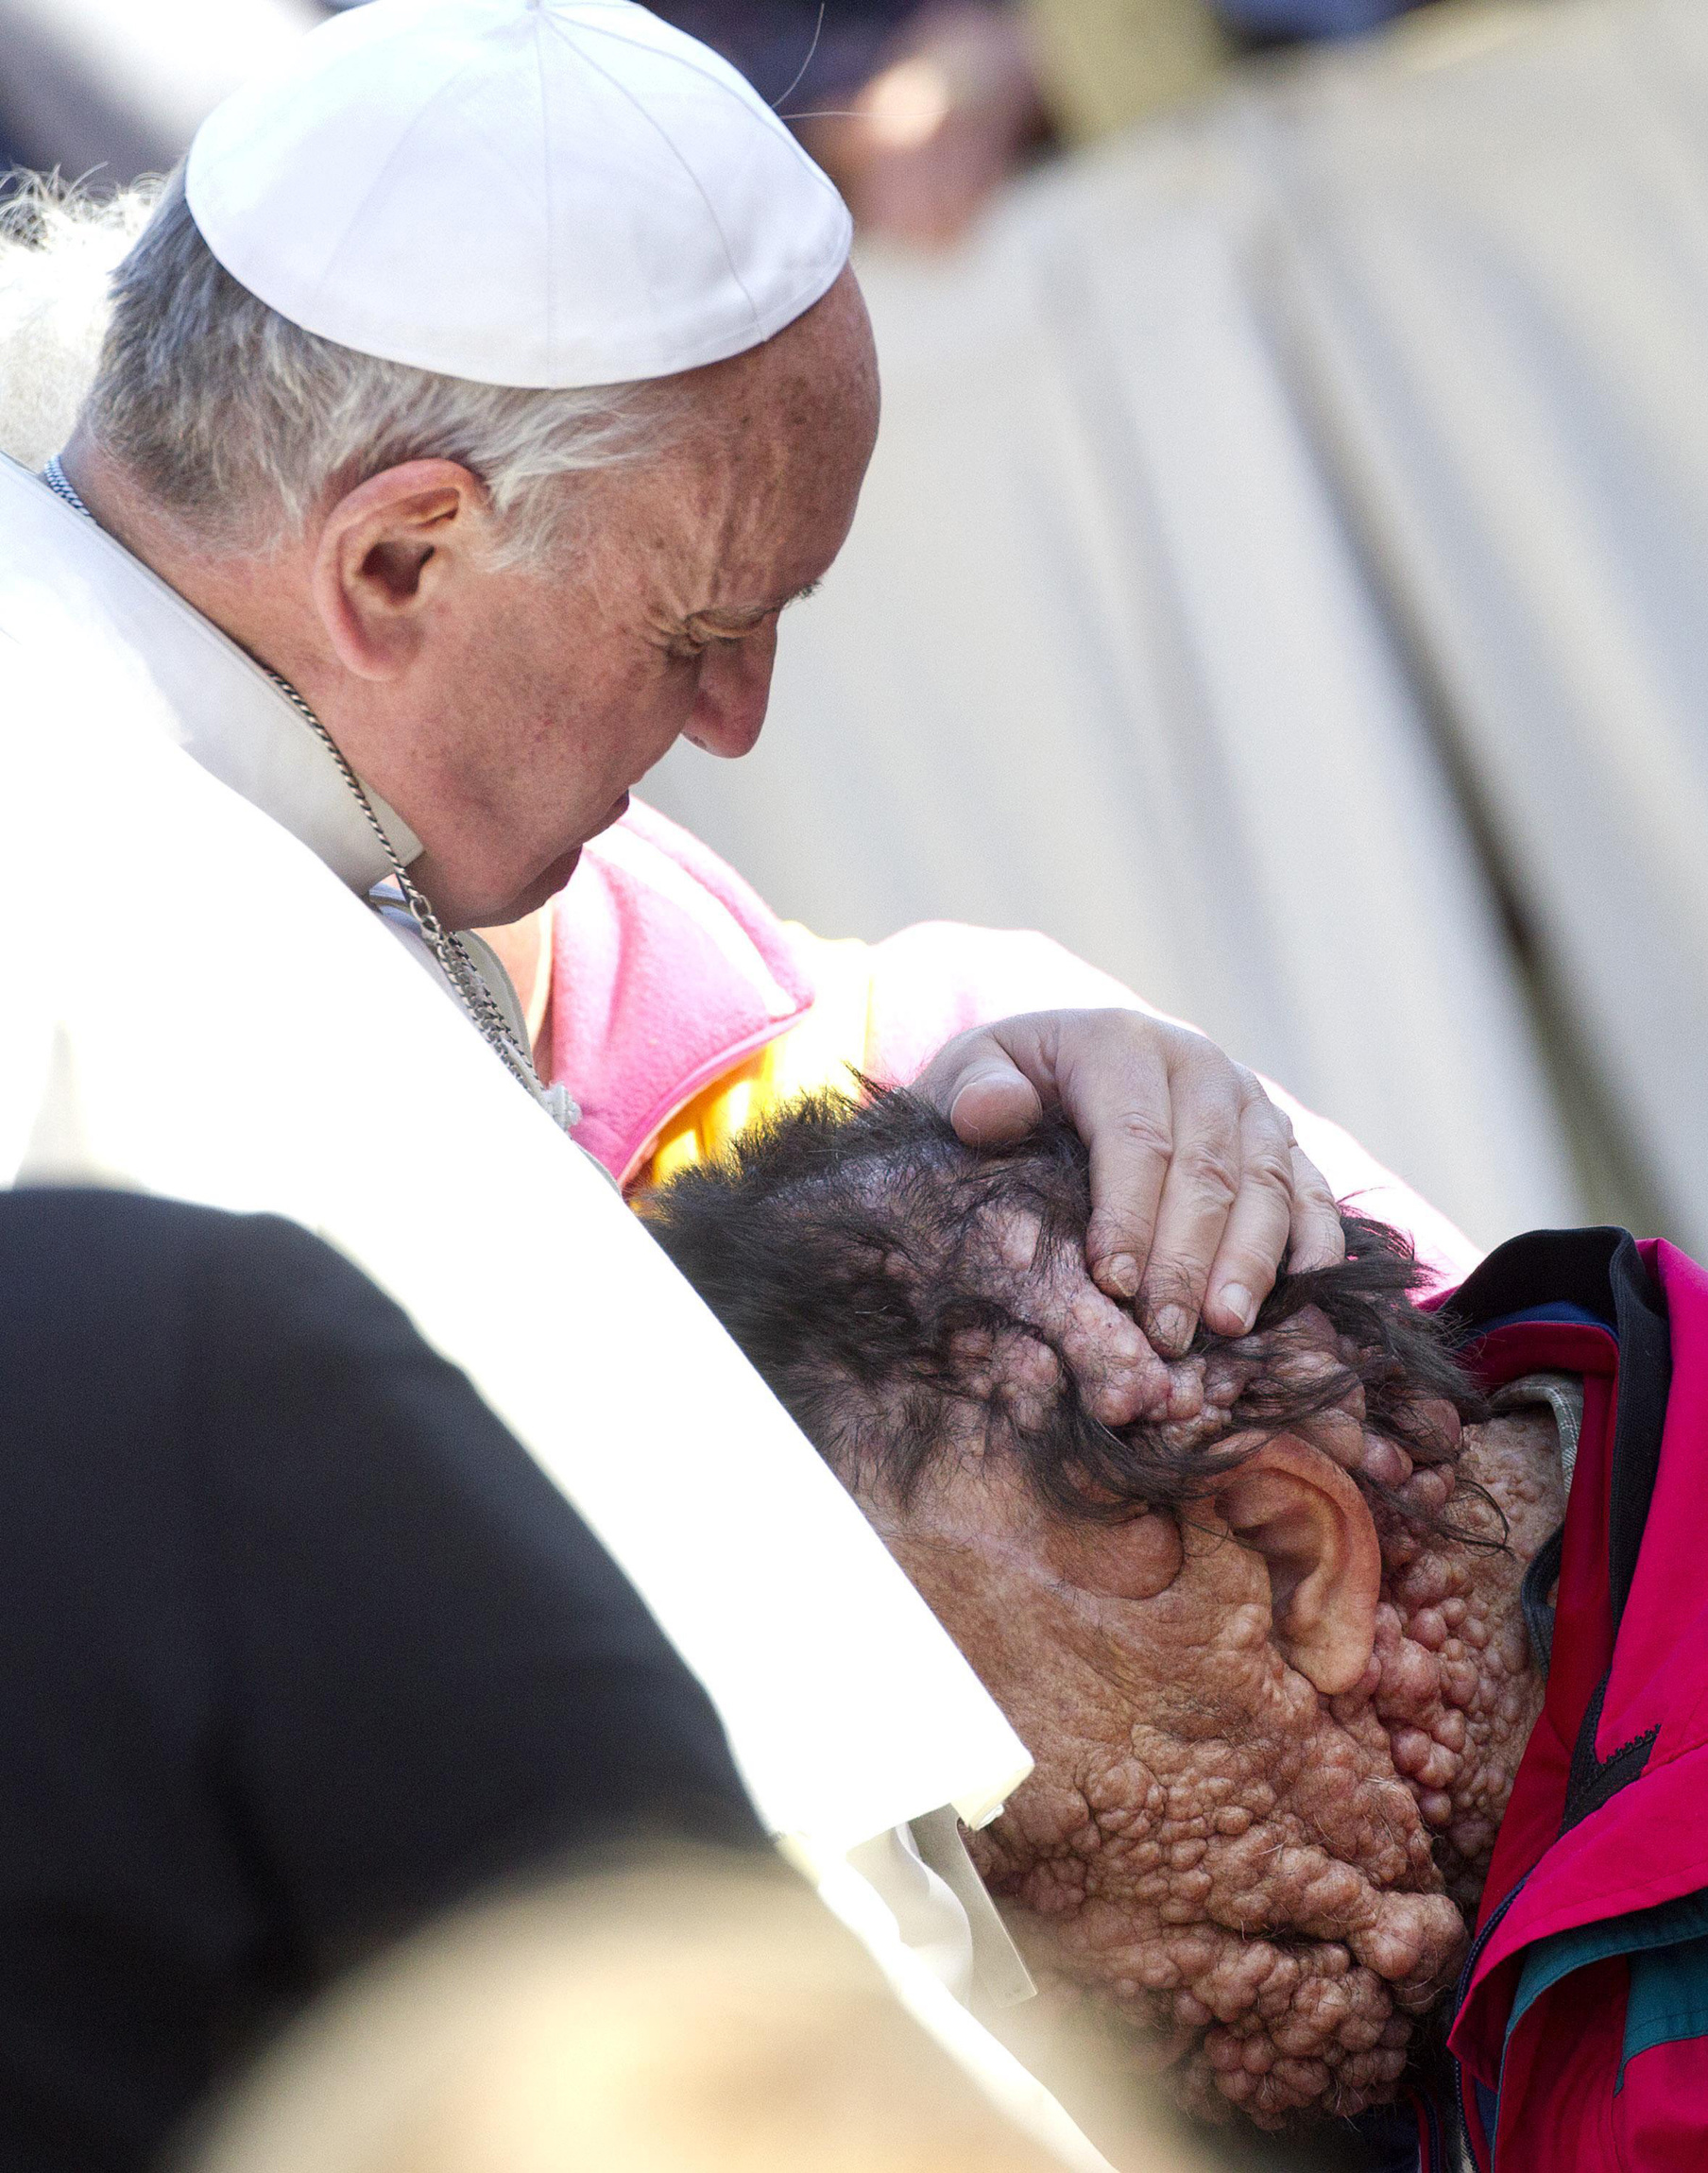 Pope embraces man disfigured by neurofibromatosis